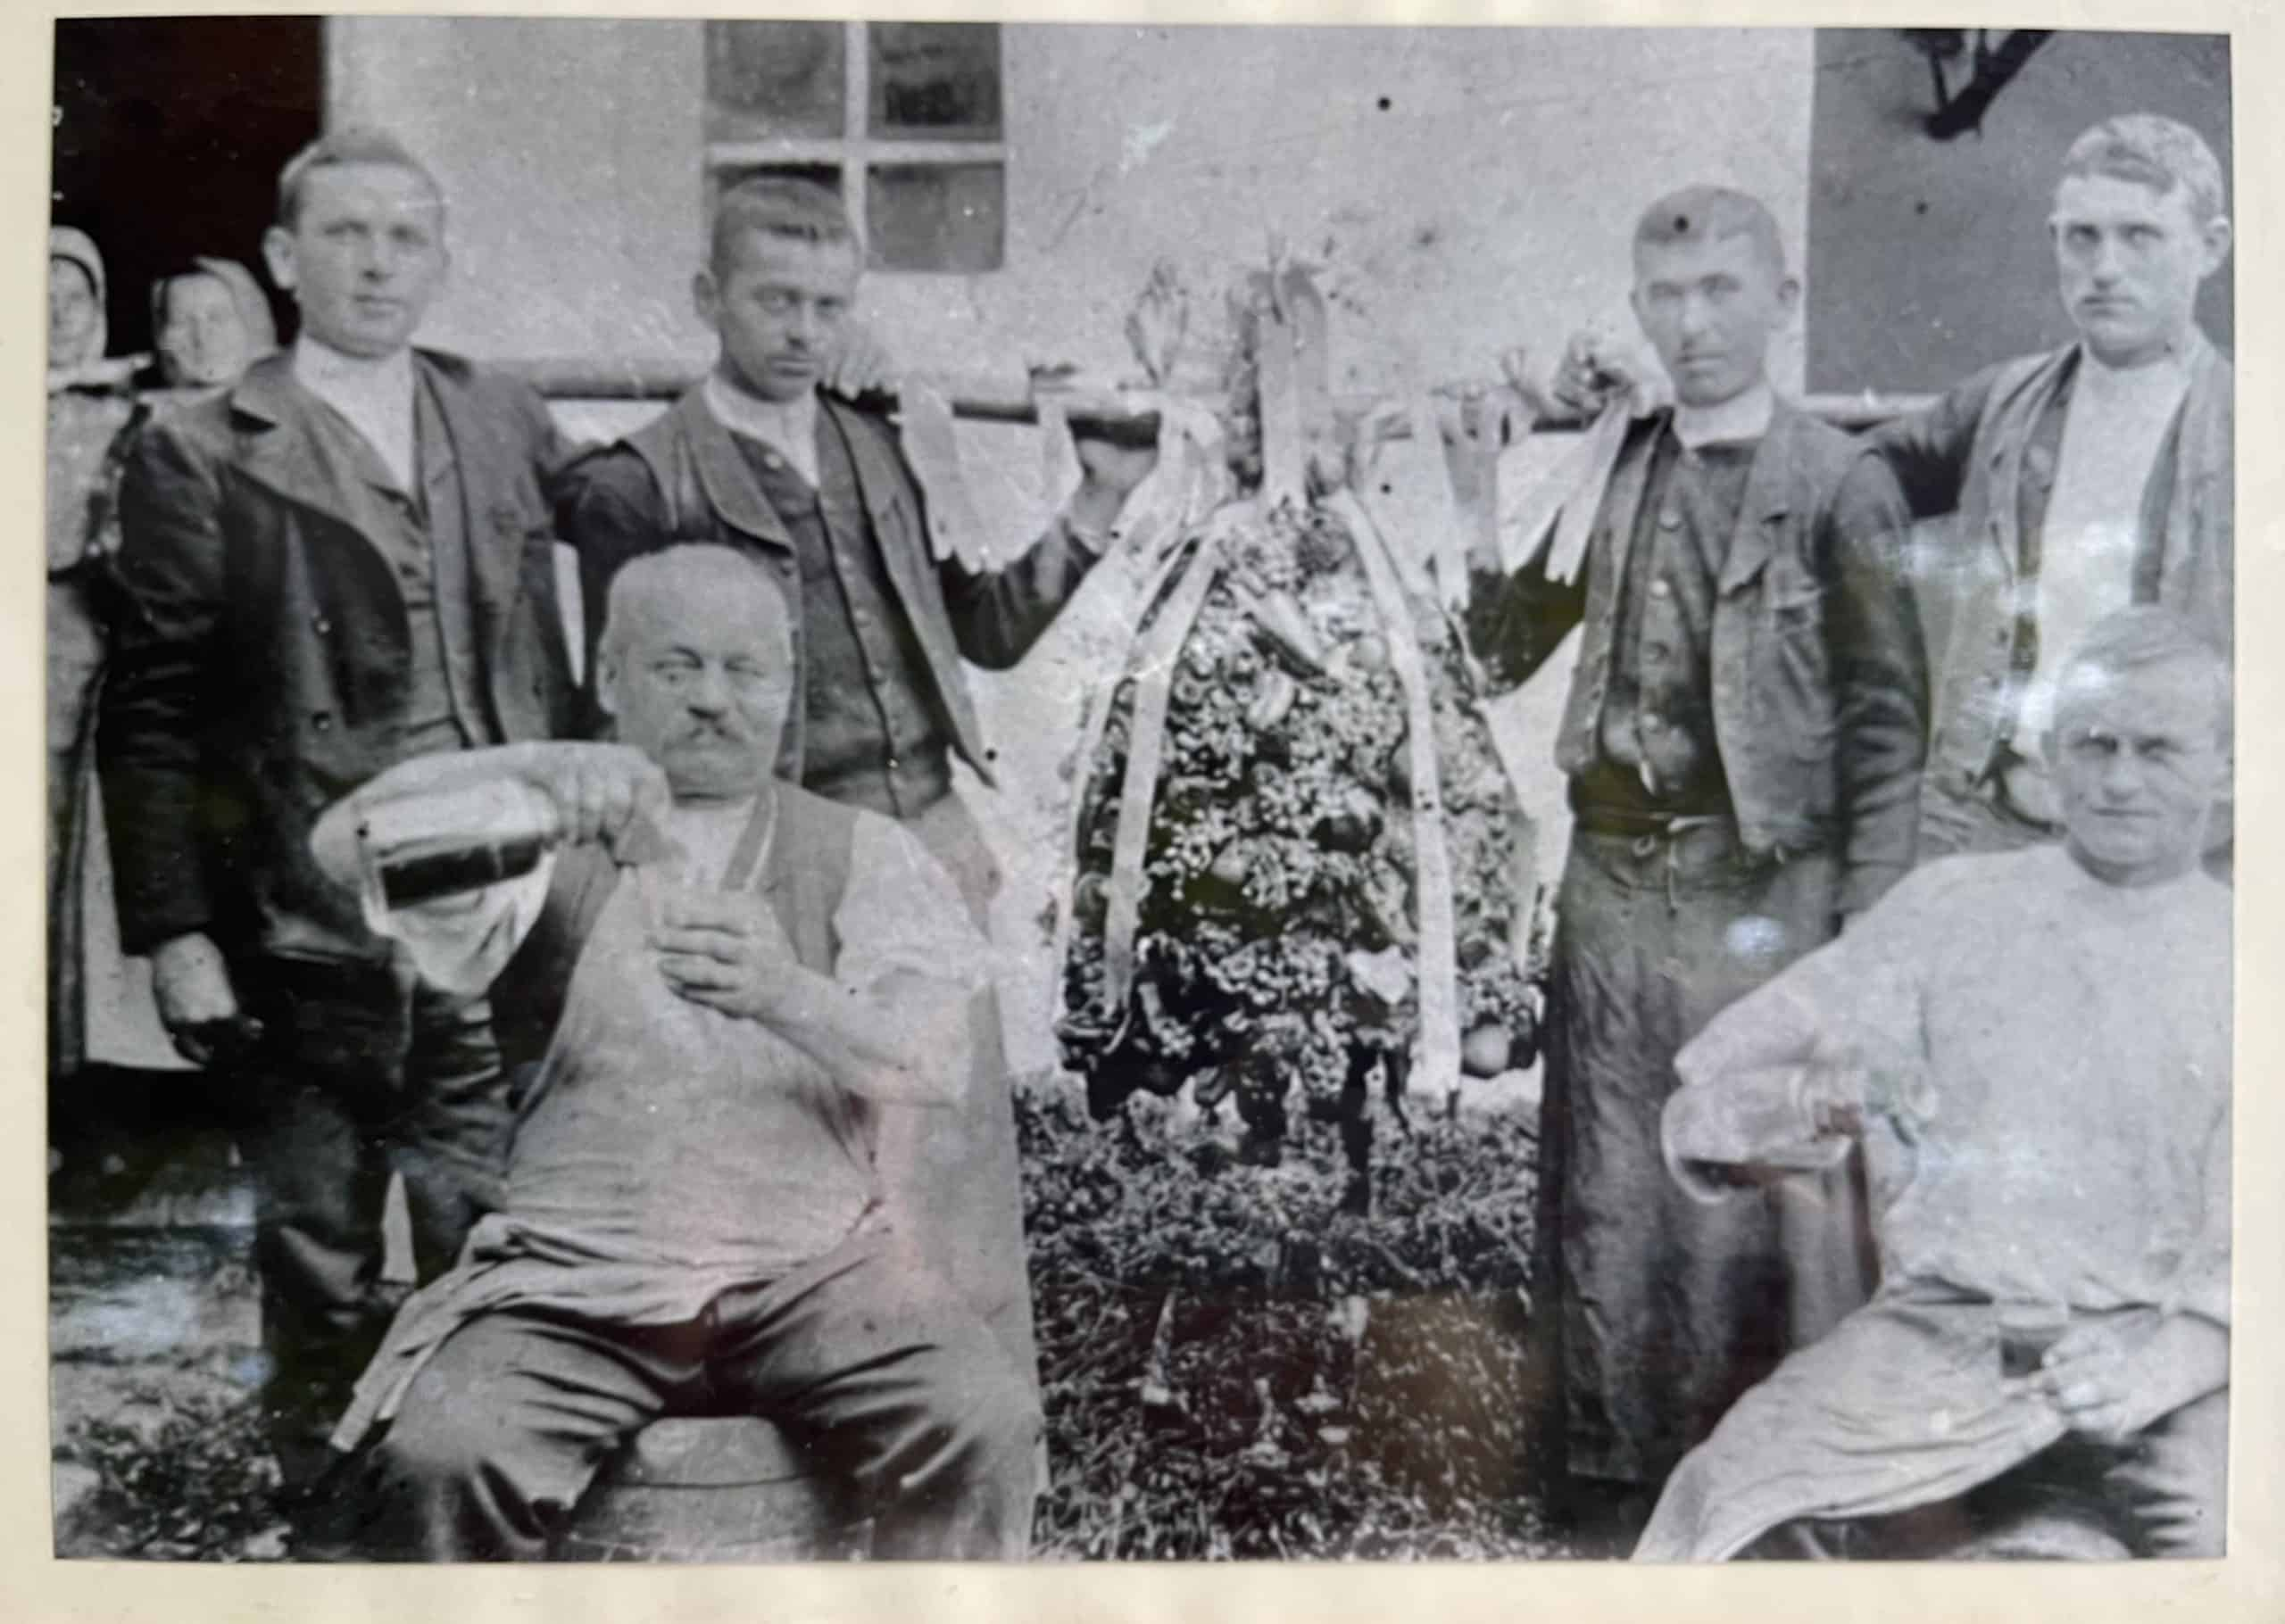 Great Grandfather and Grandfather Schieszl celebrating Harvest